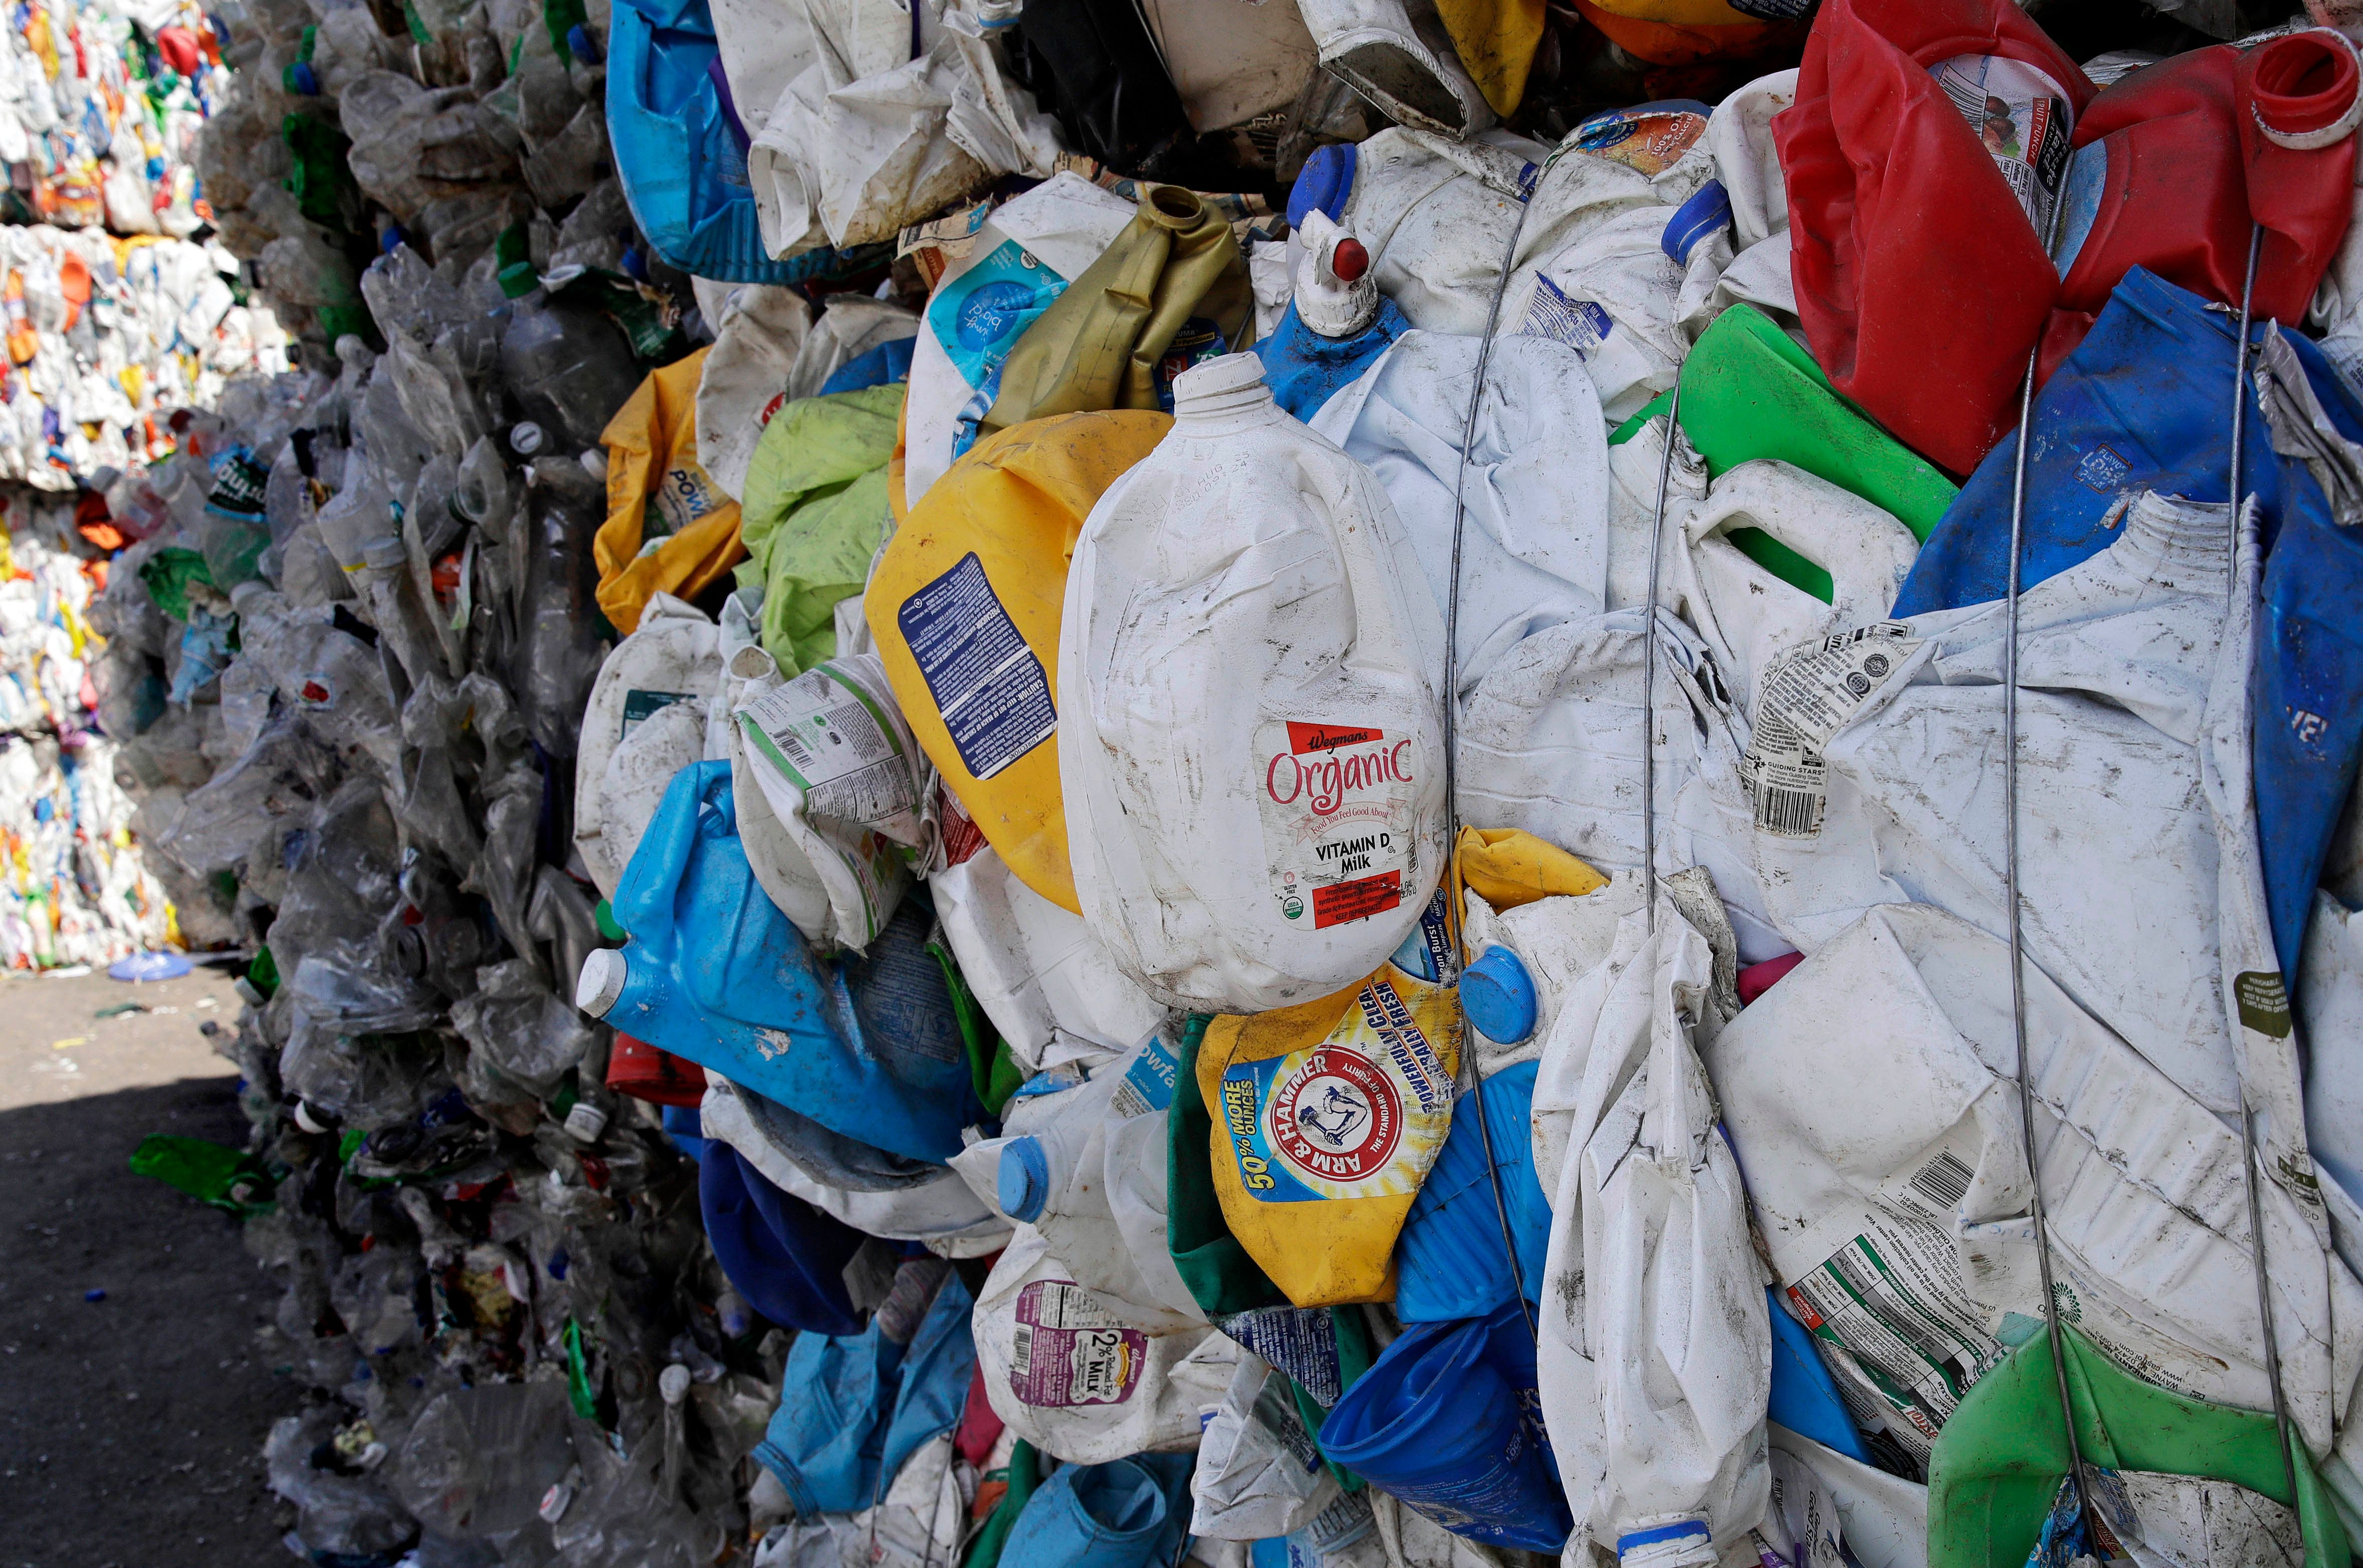 Global plastic production has increased from 16.5 million tons a year in the 1960s to over 364 million tons a year now and is